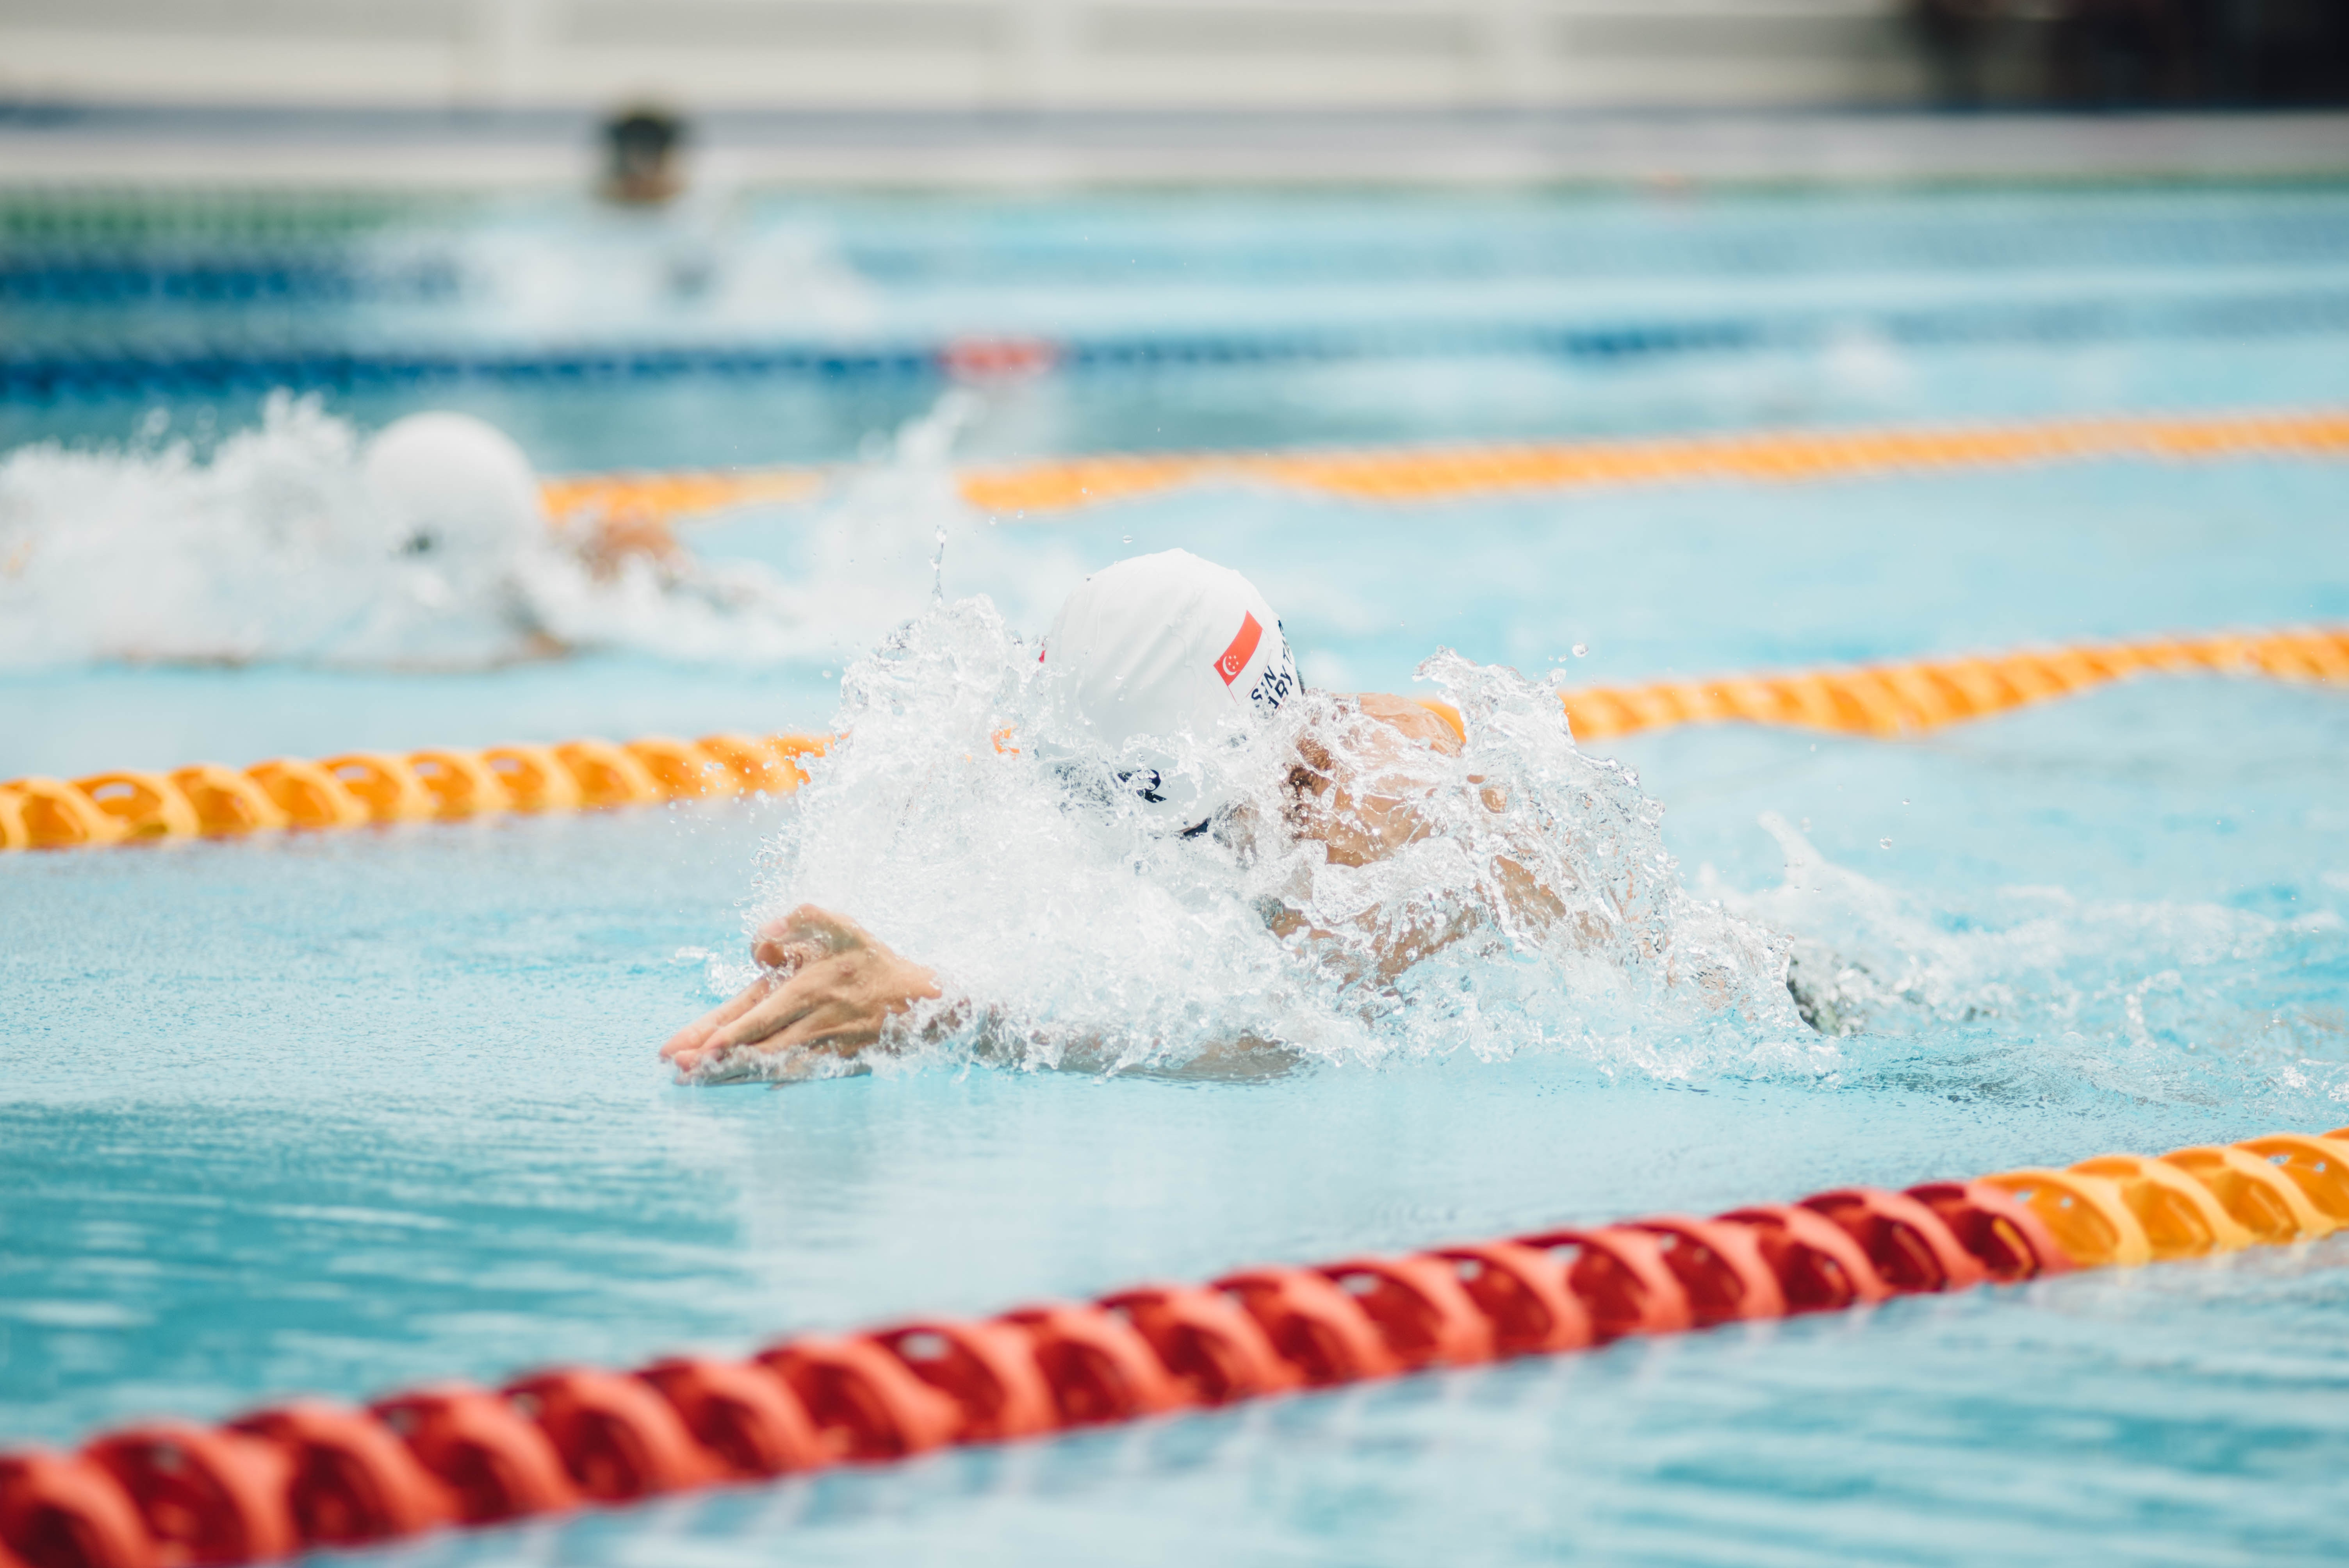 Athletes with disabilities compete in a swimming competition.